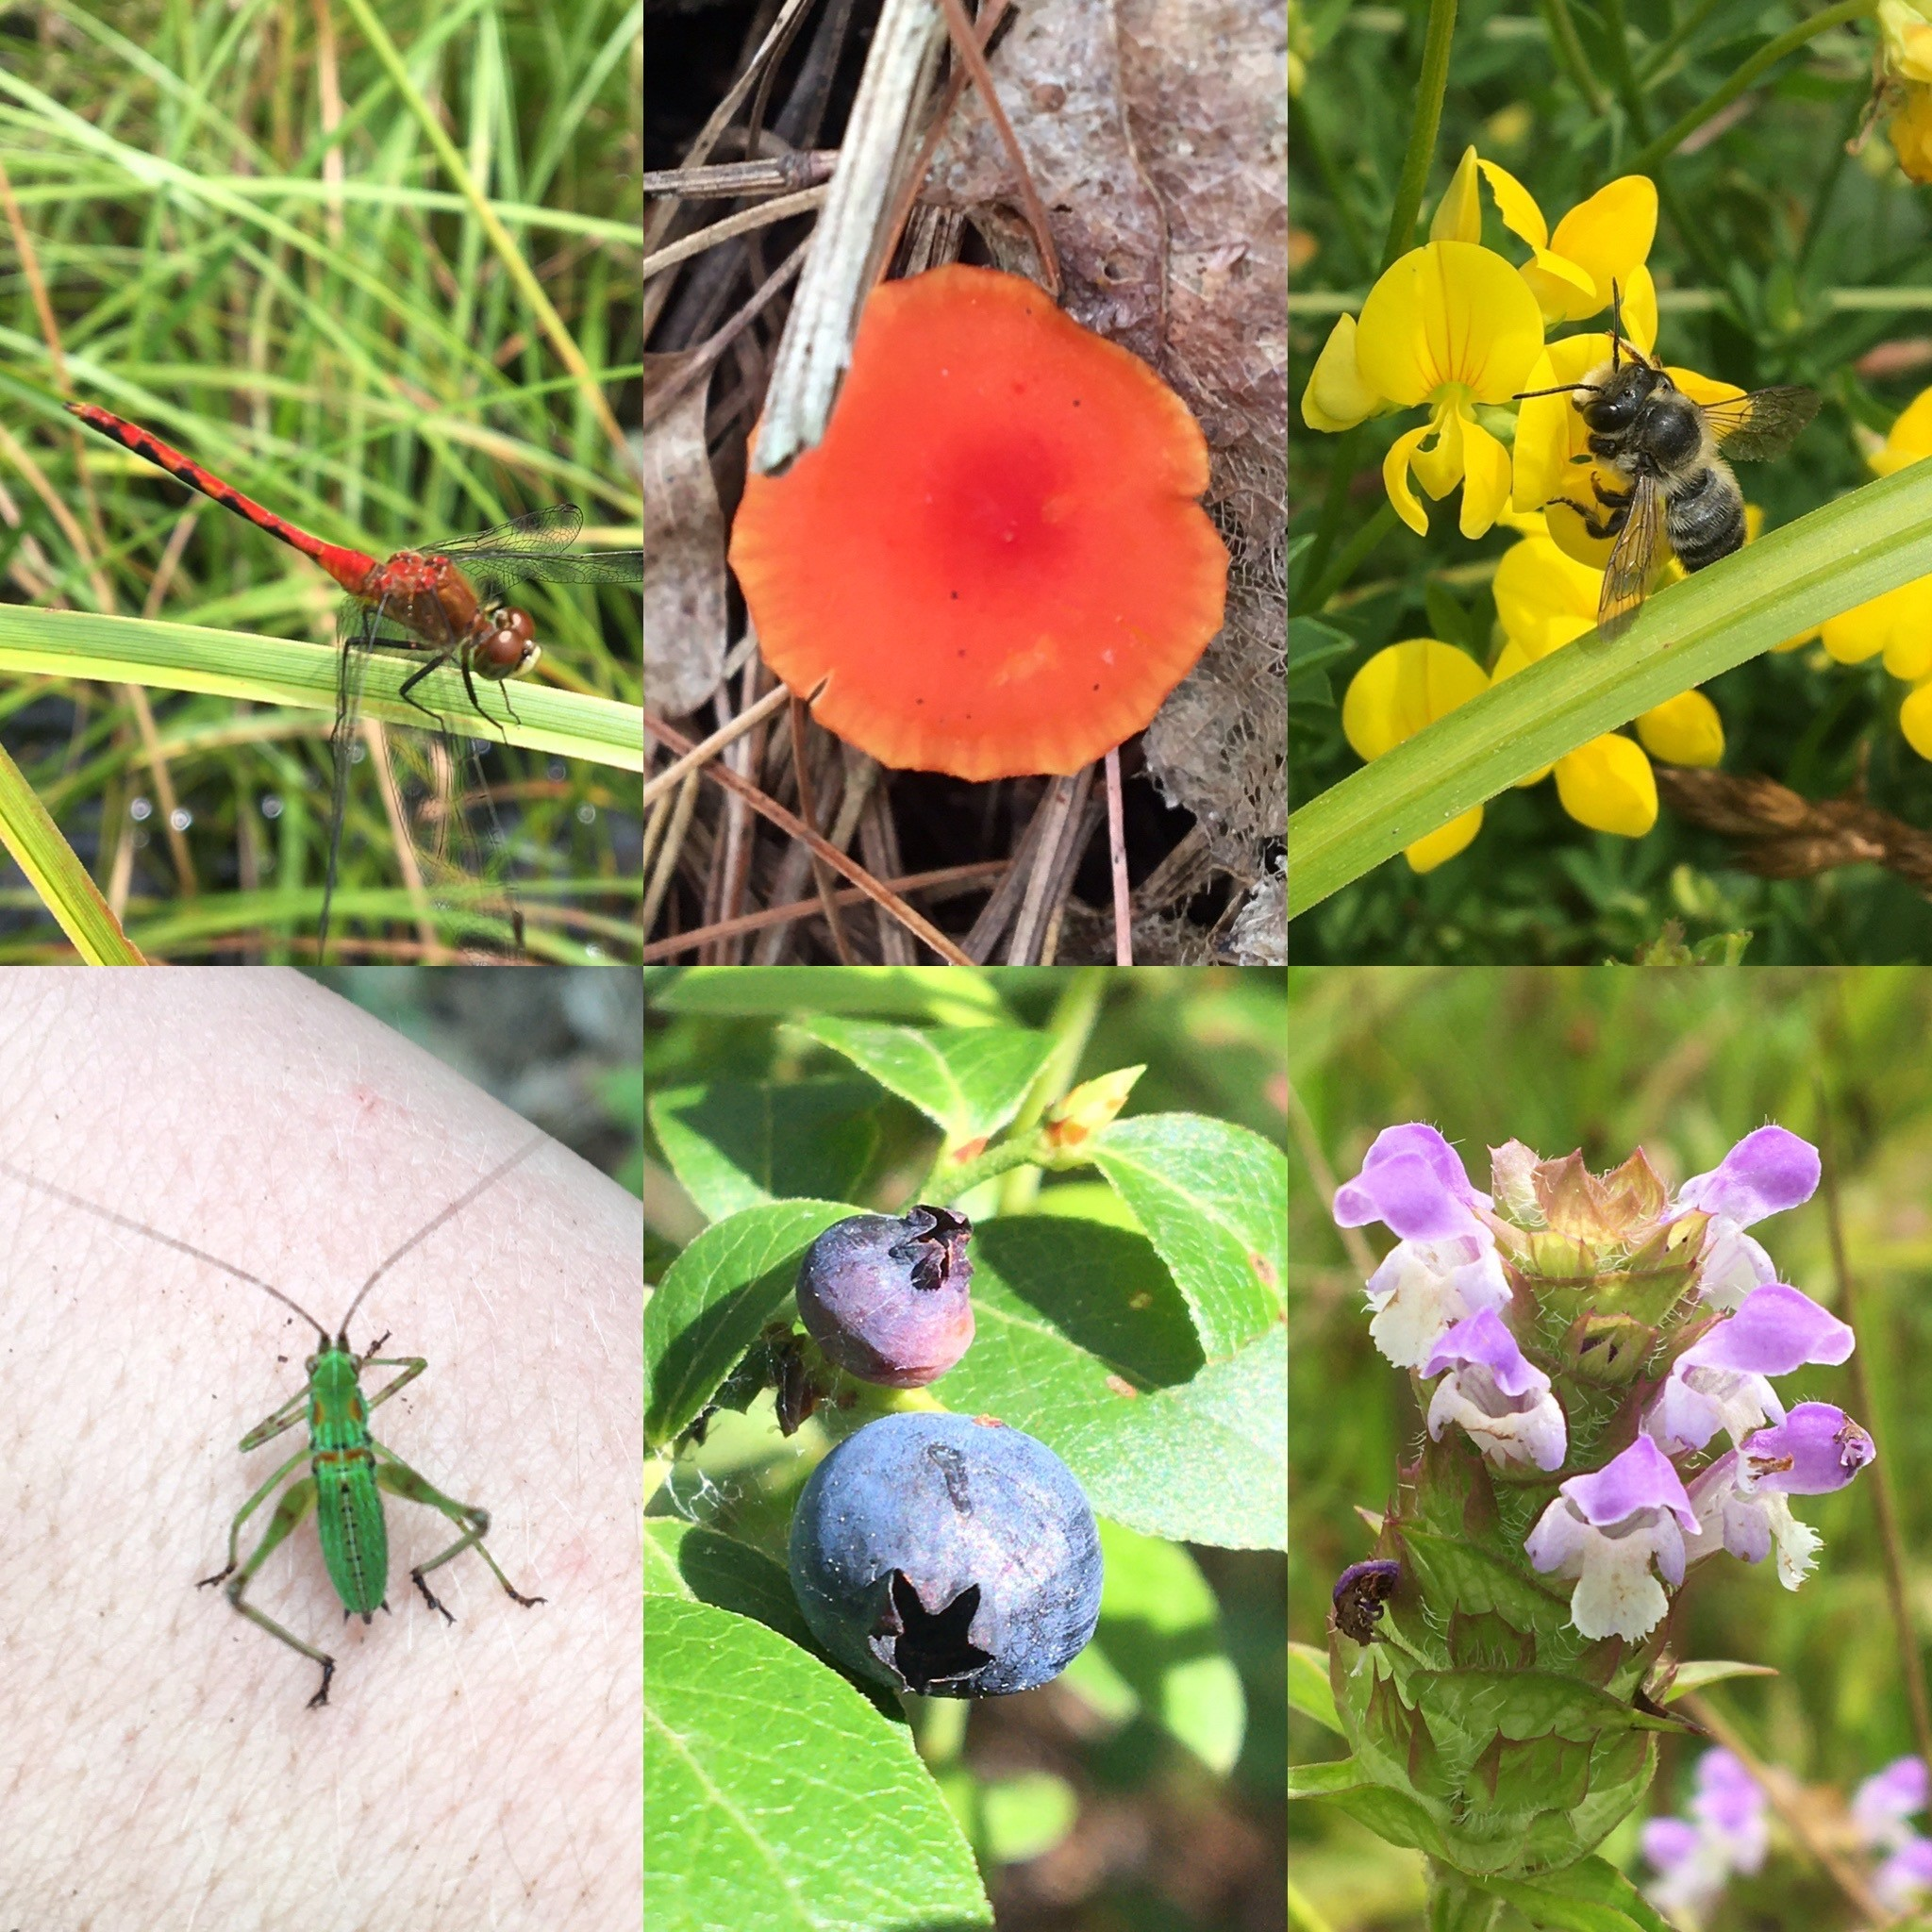 a photo collage of a red dragonfly, fungus, trefoil plant and bee, heal-all plant, blueberries, katydid nymph.